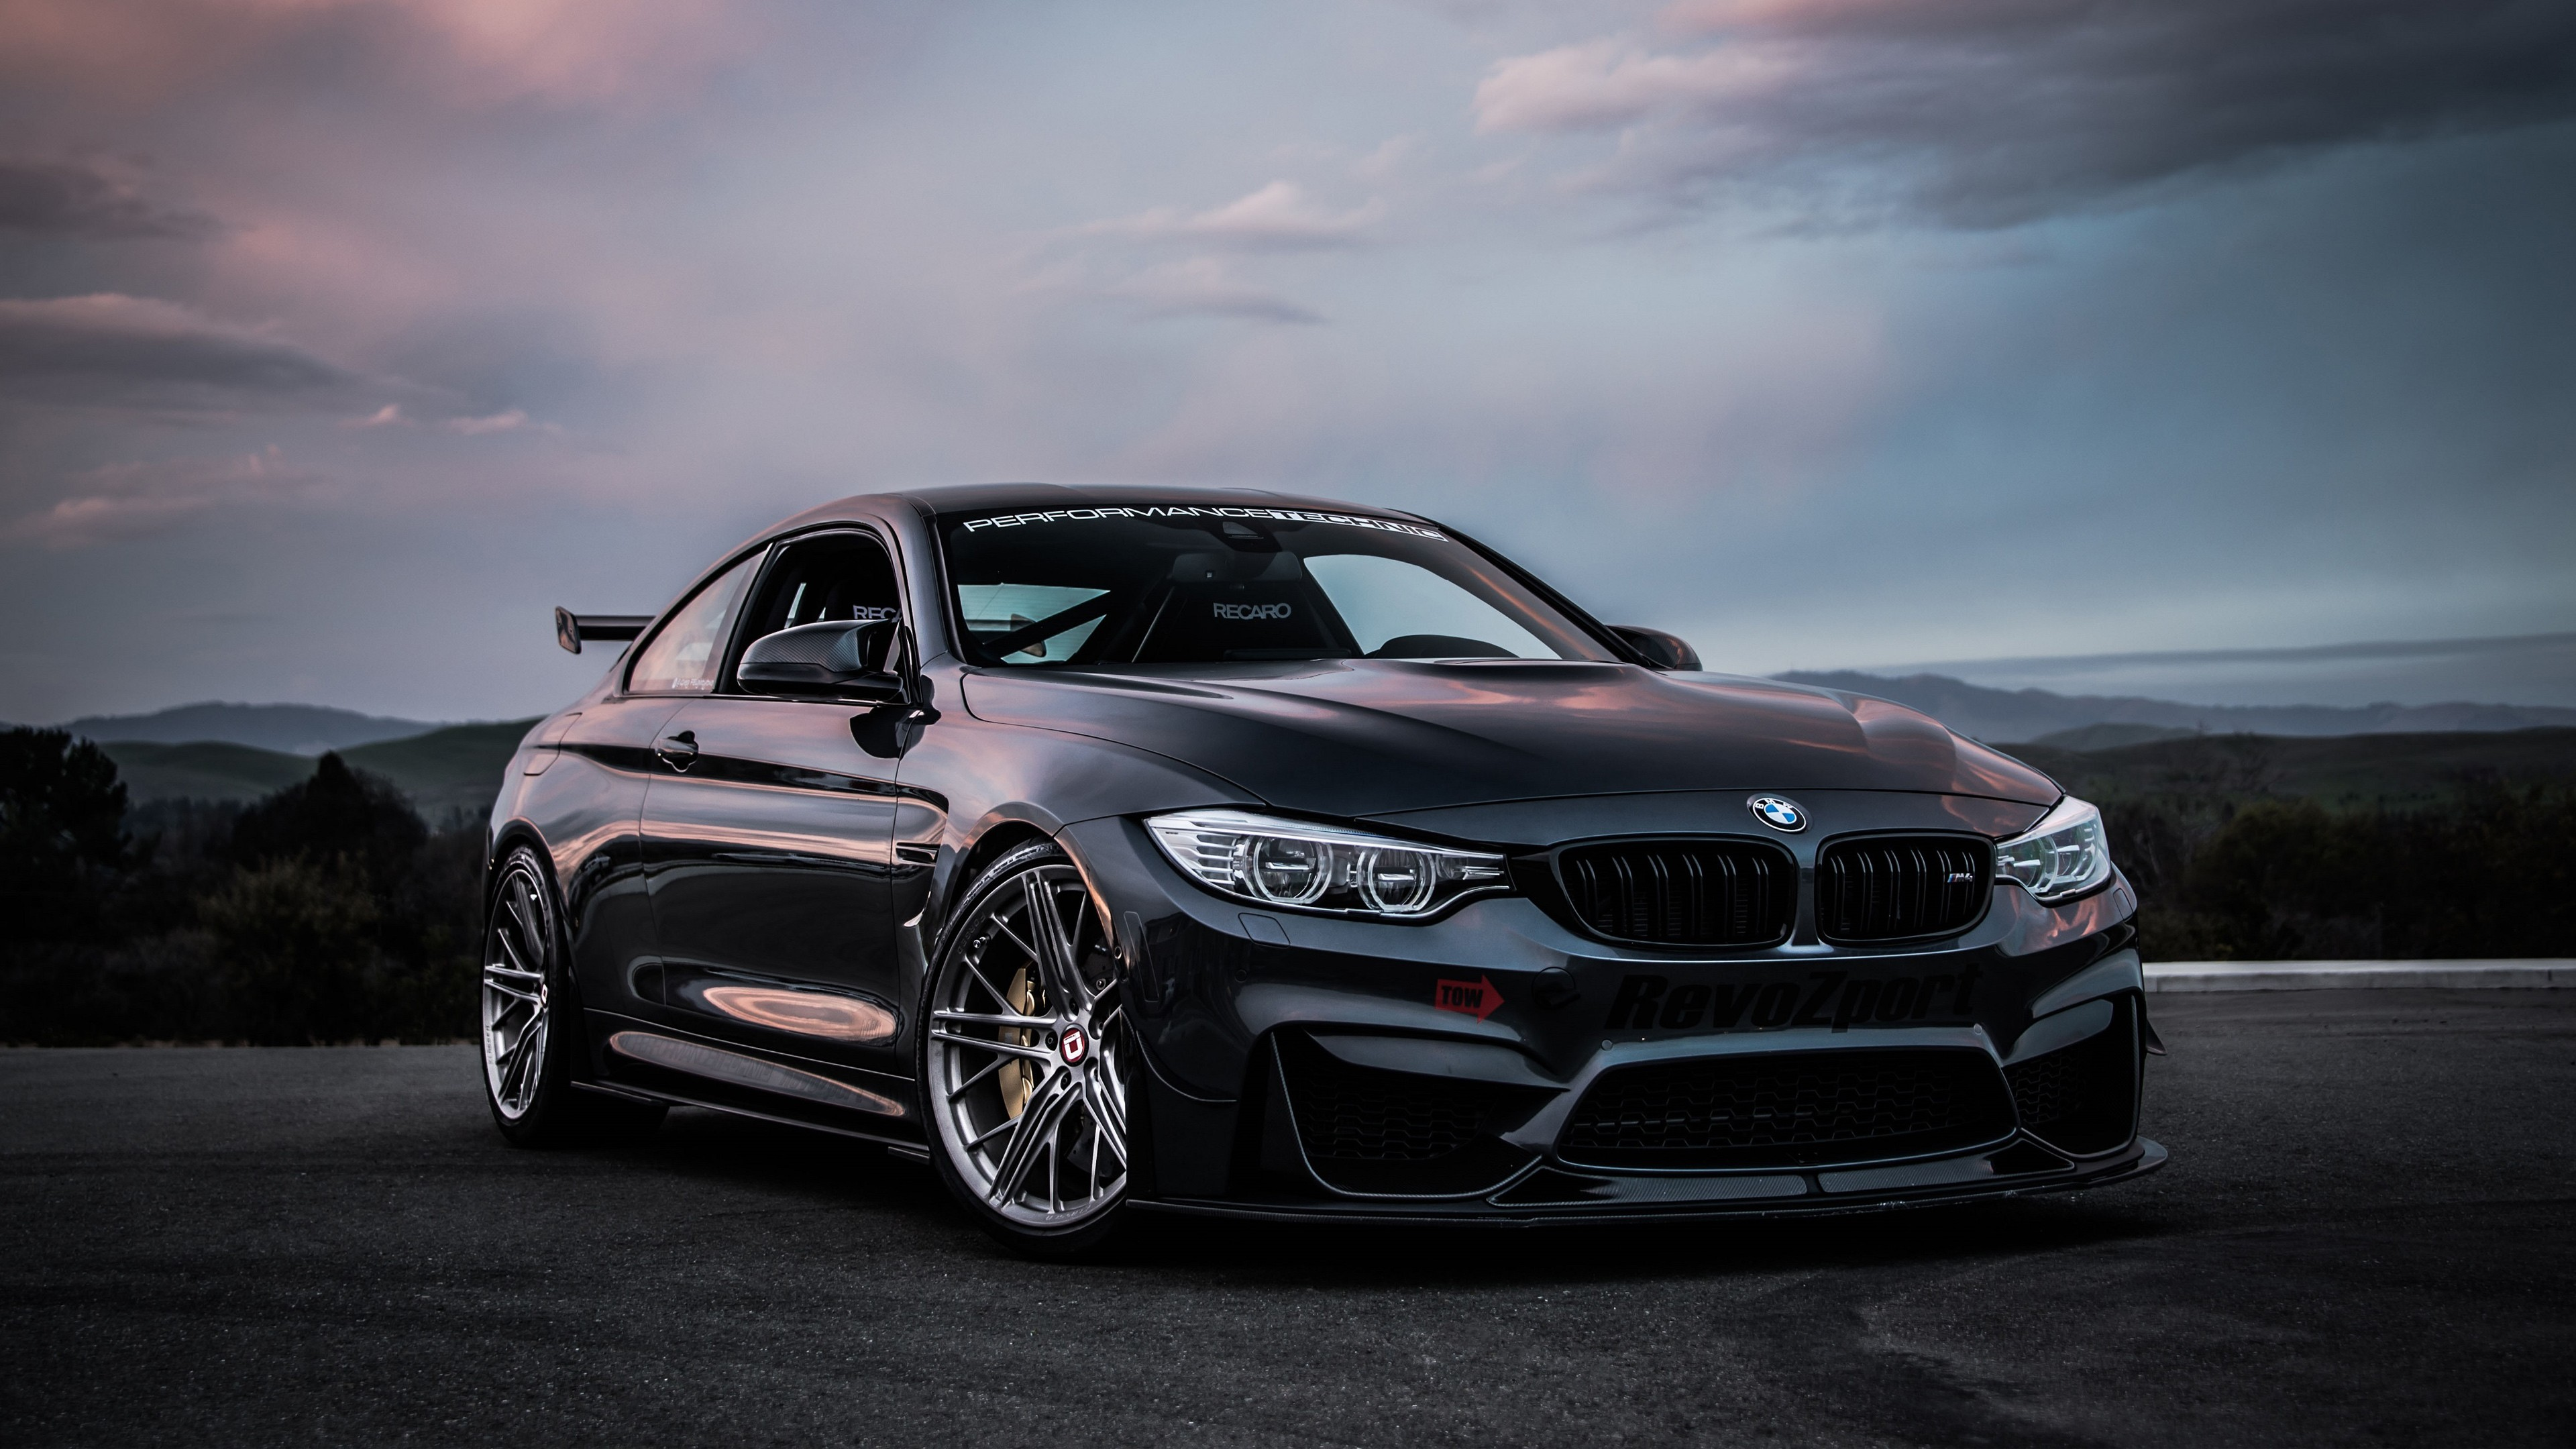 Bmw Wallpaper Download Free Awesome Wallpapers Of Bmw Cars